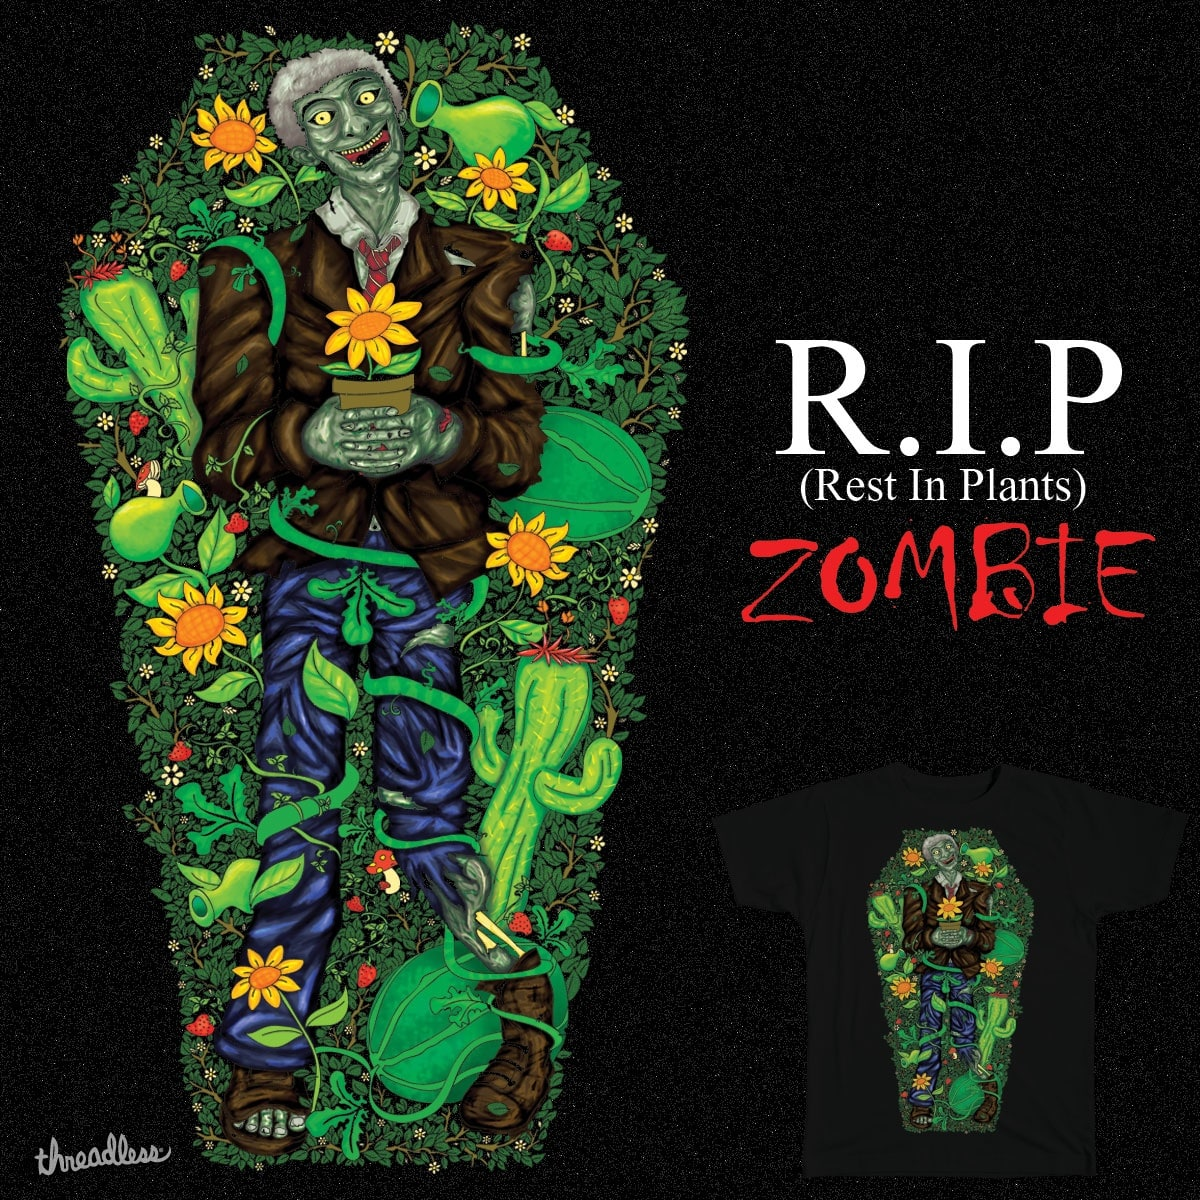 R.I.P Zombie by Dewedhe on Threadless